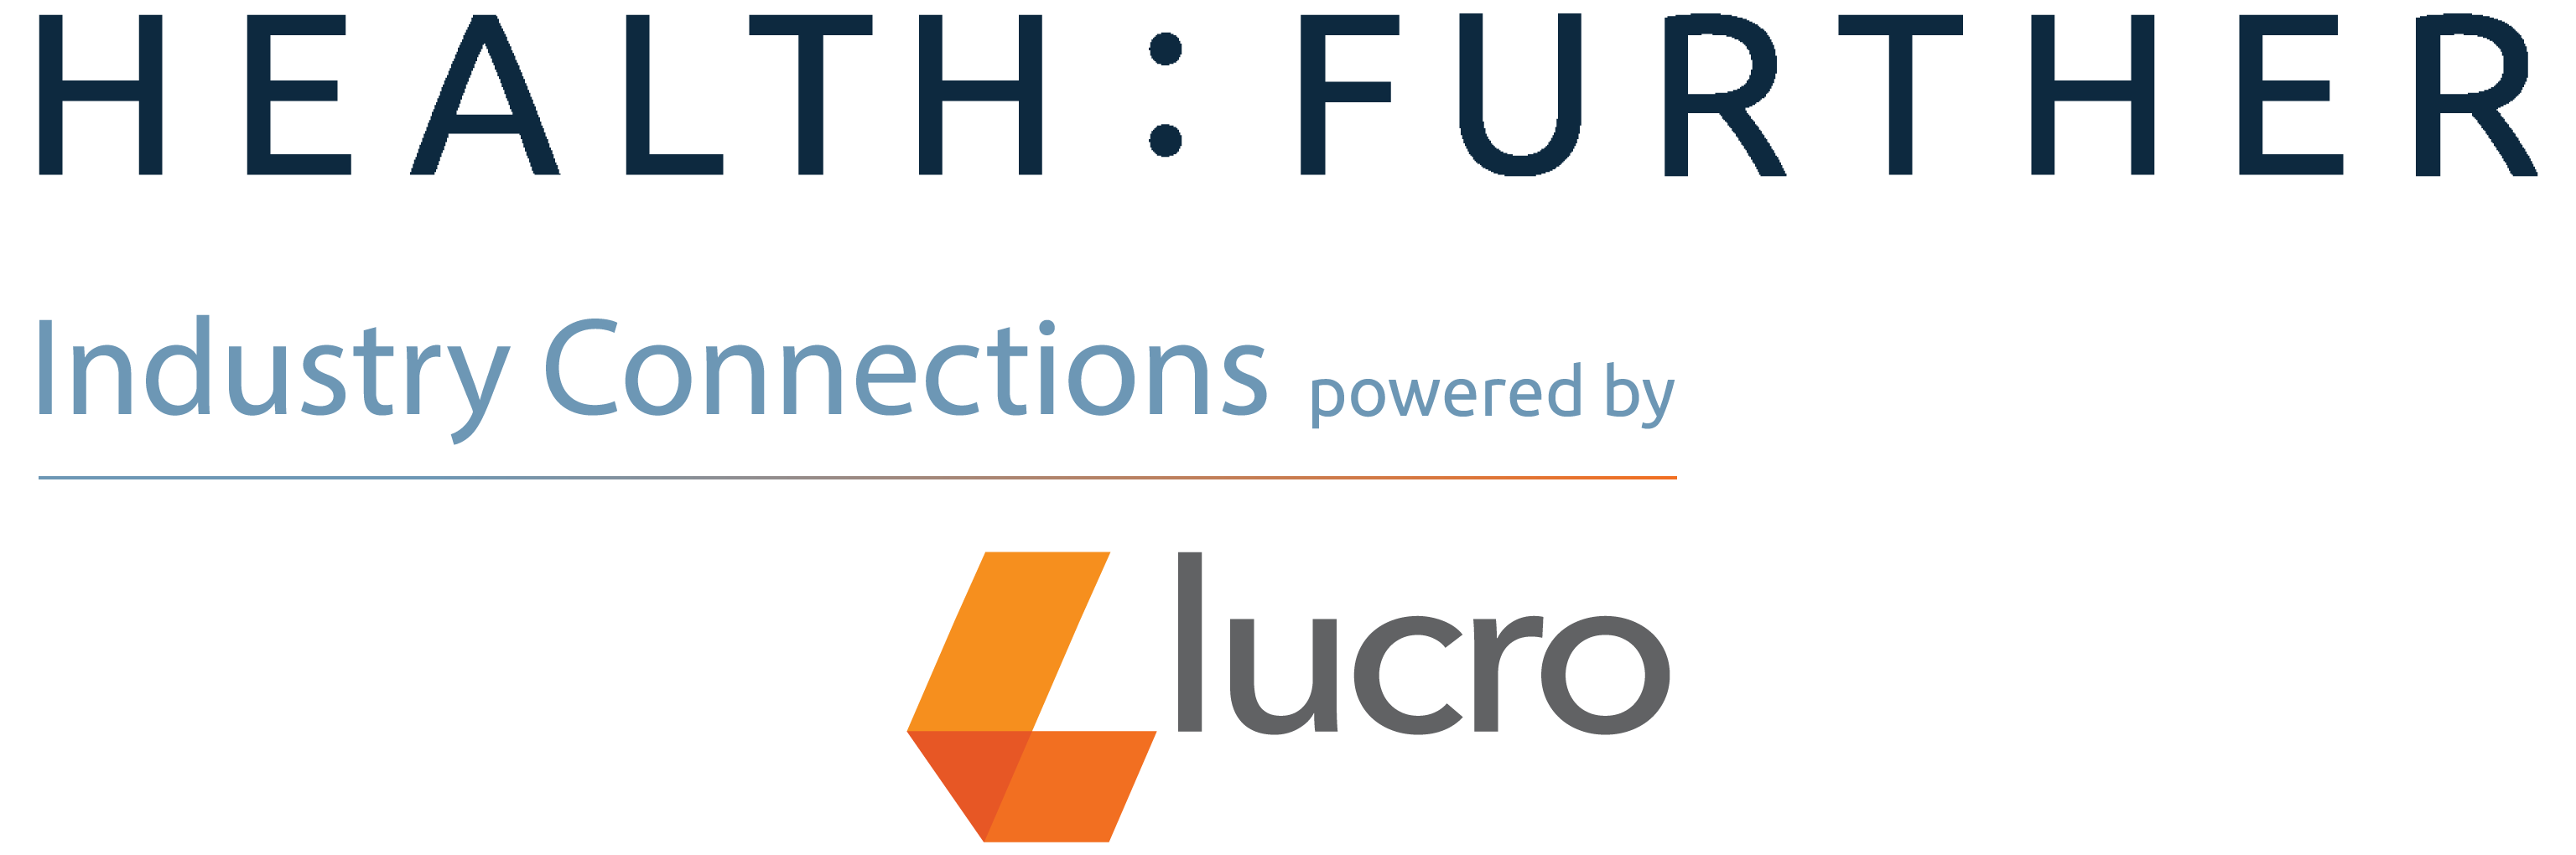 Health:Further powered by Lucro